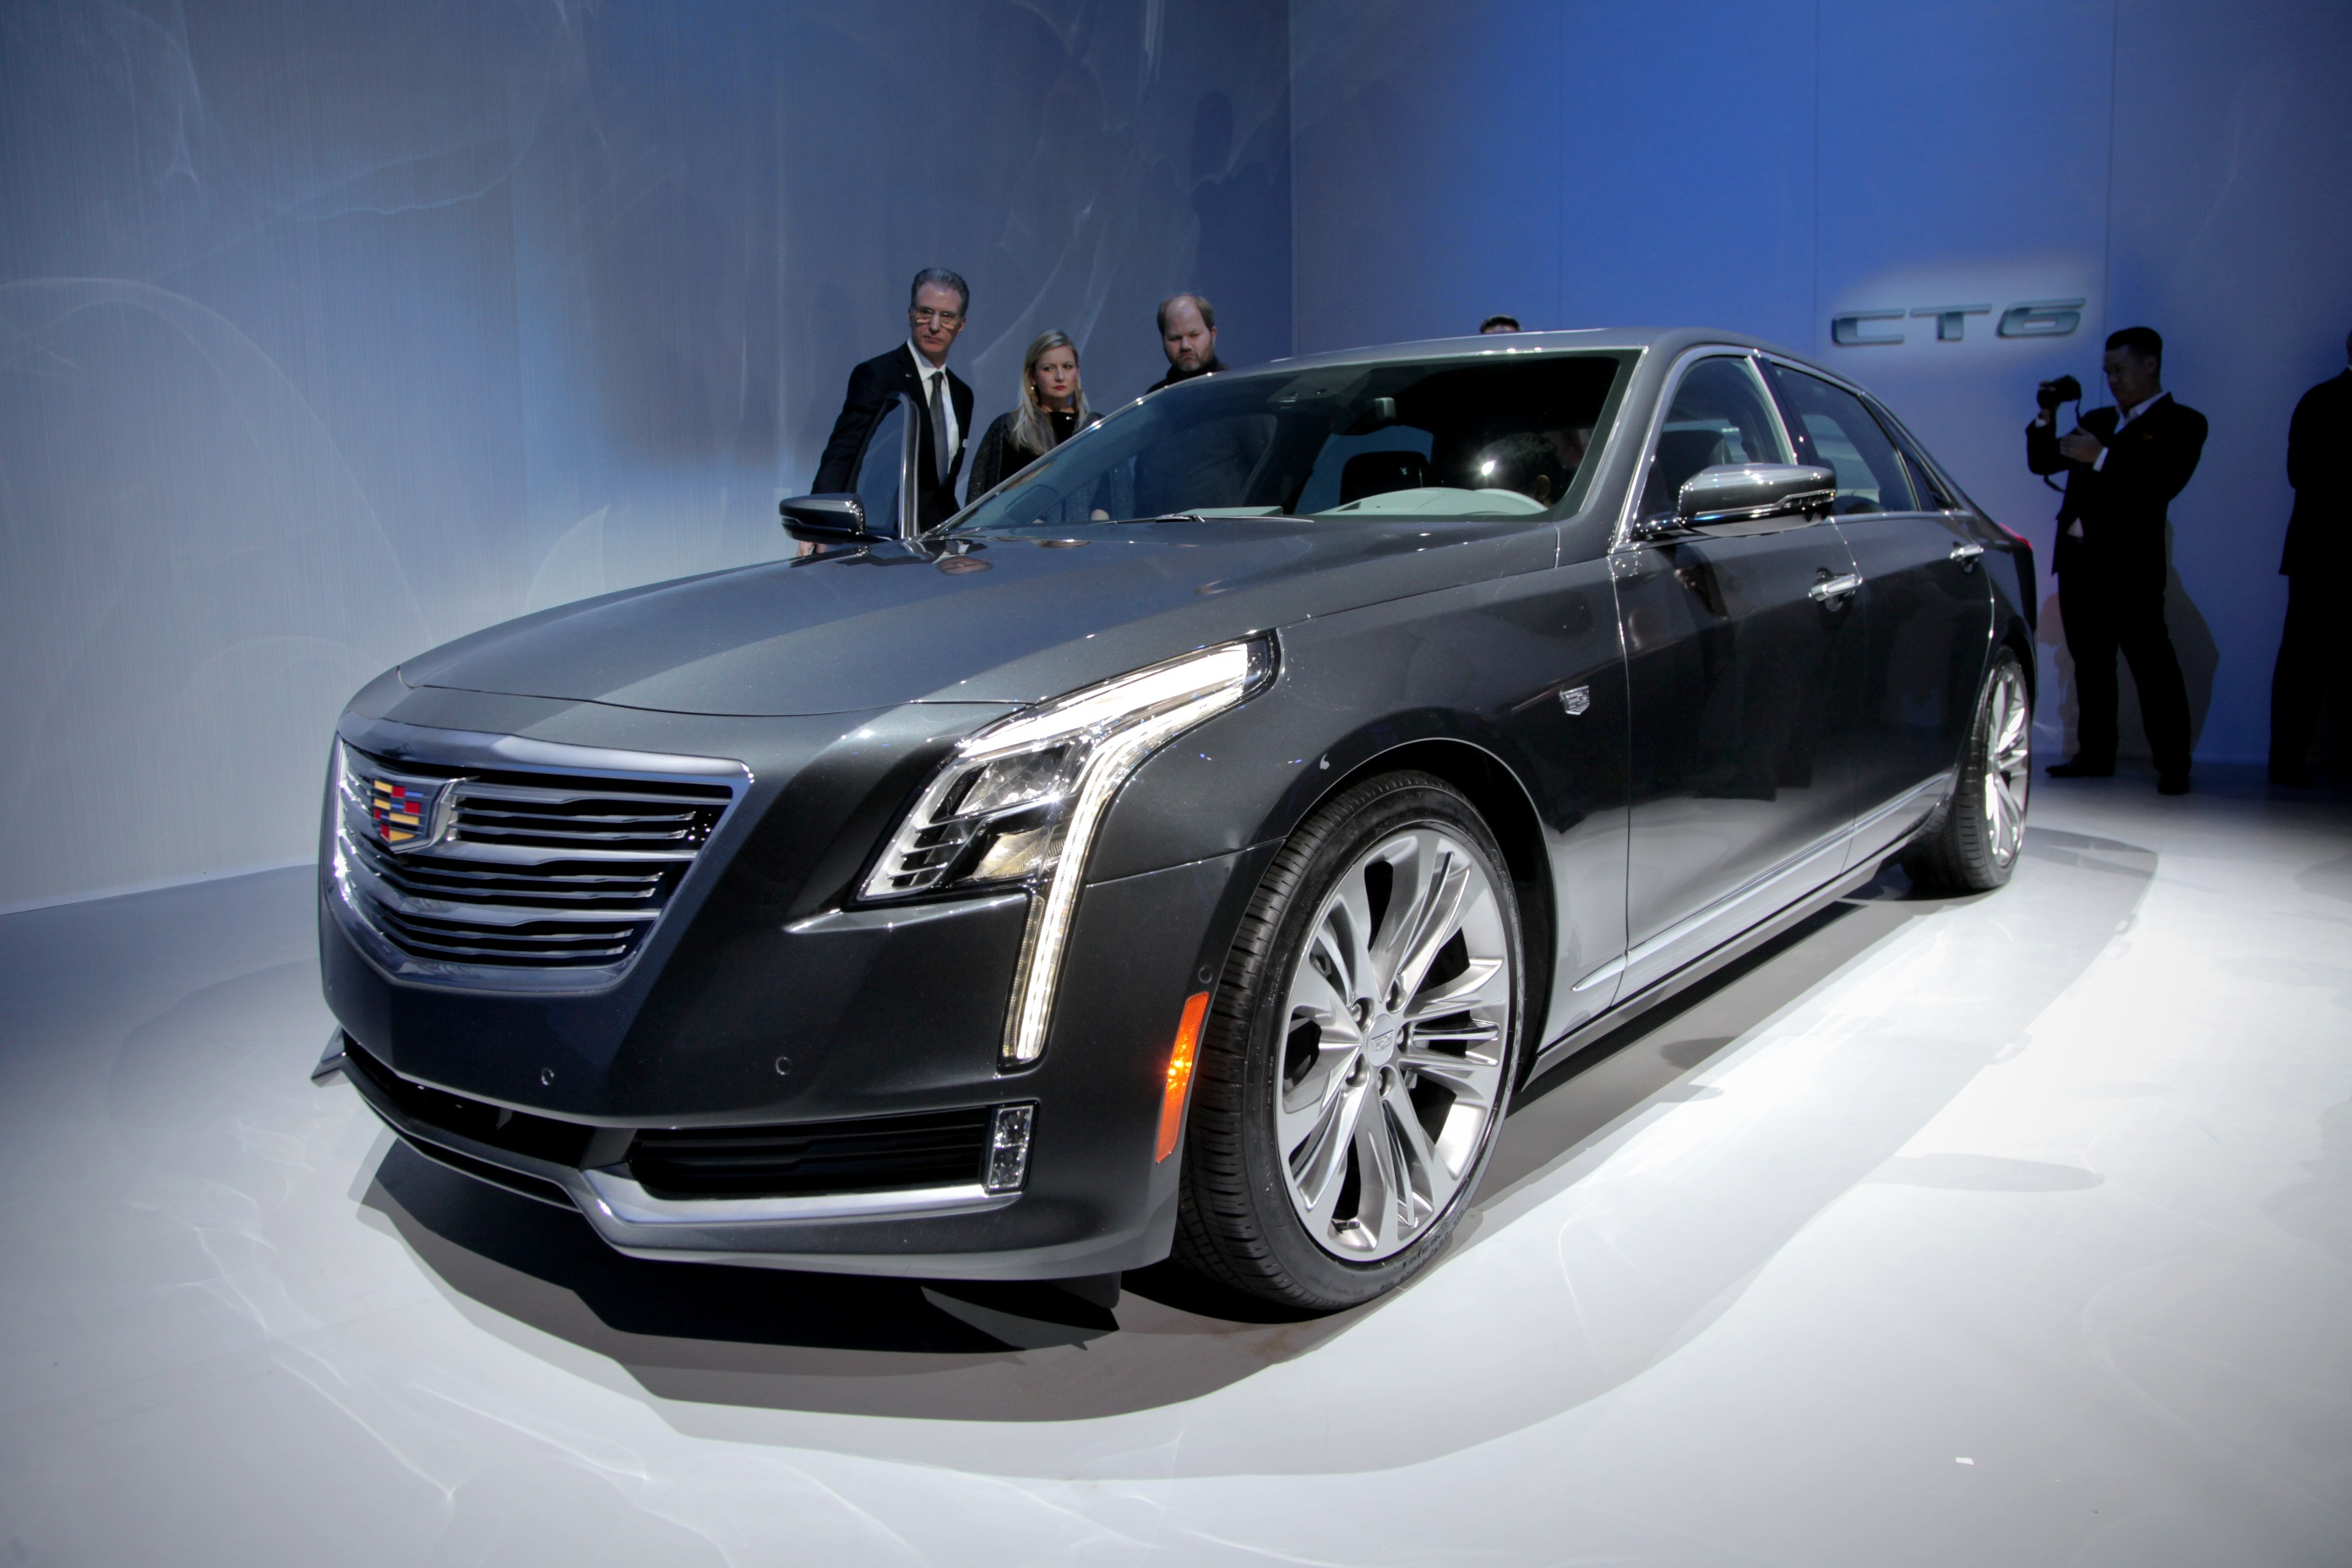 2016 cadillac ct6 video first look news. Black Bedroom Furniture Sets. Home Design Ideas